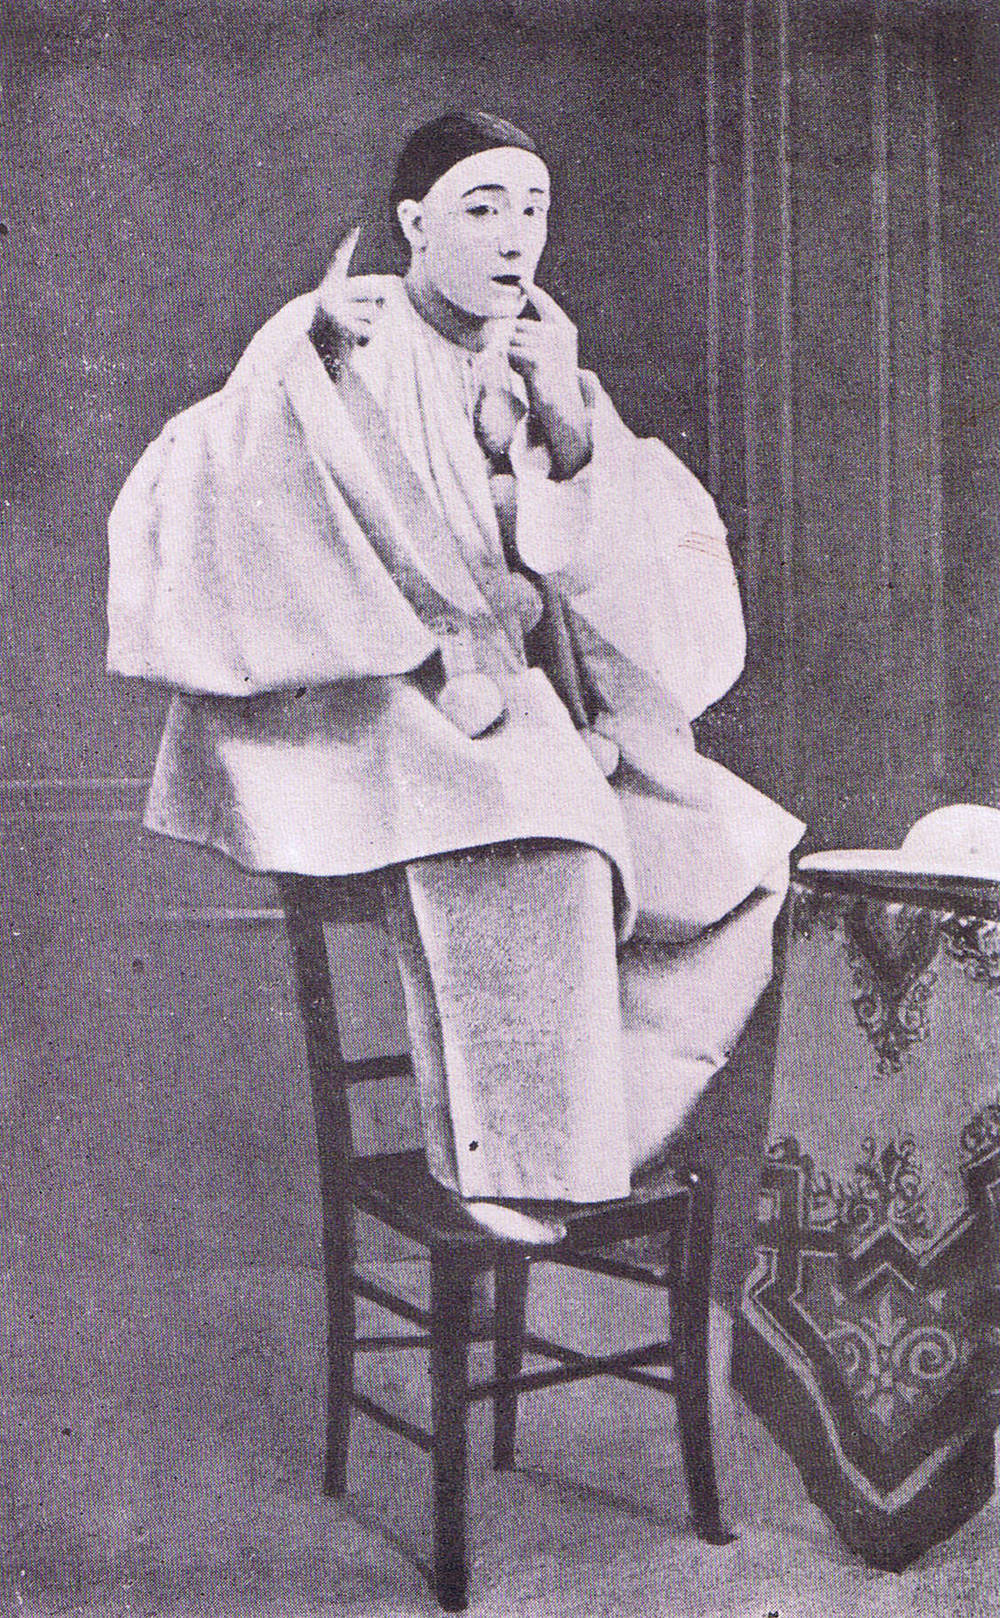 Louis_Rouffe_as_Pierrot,_c._1880.jpg